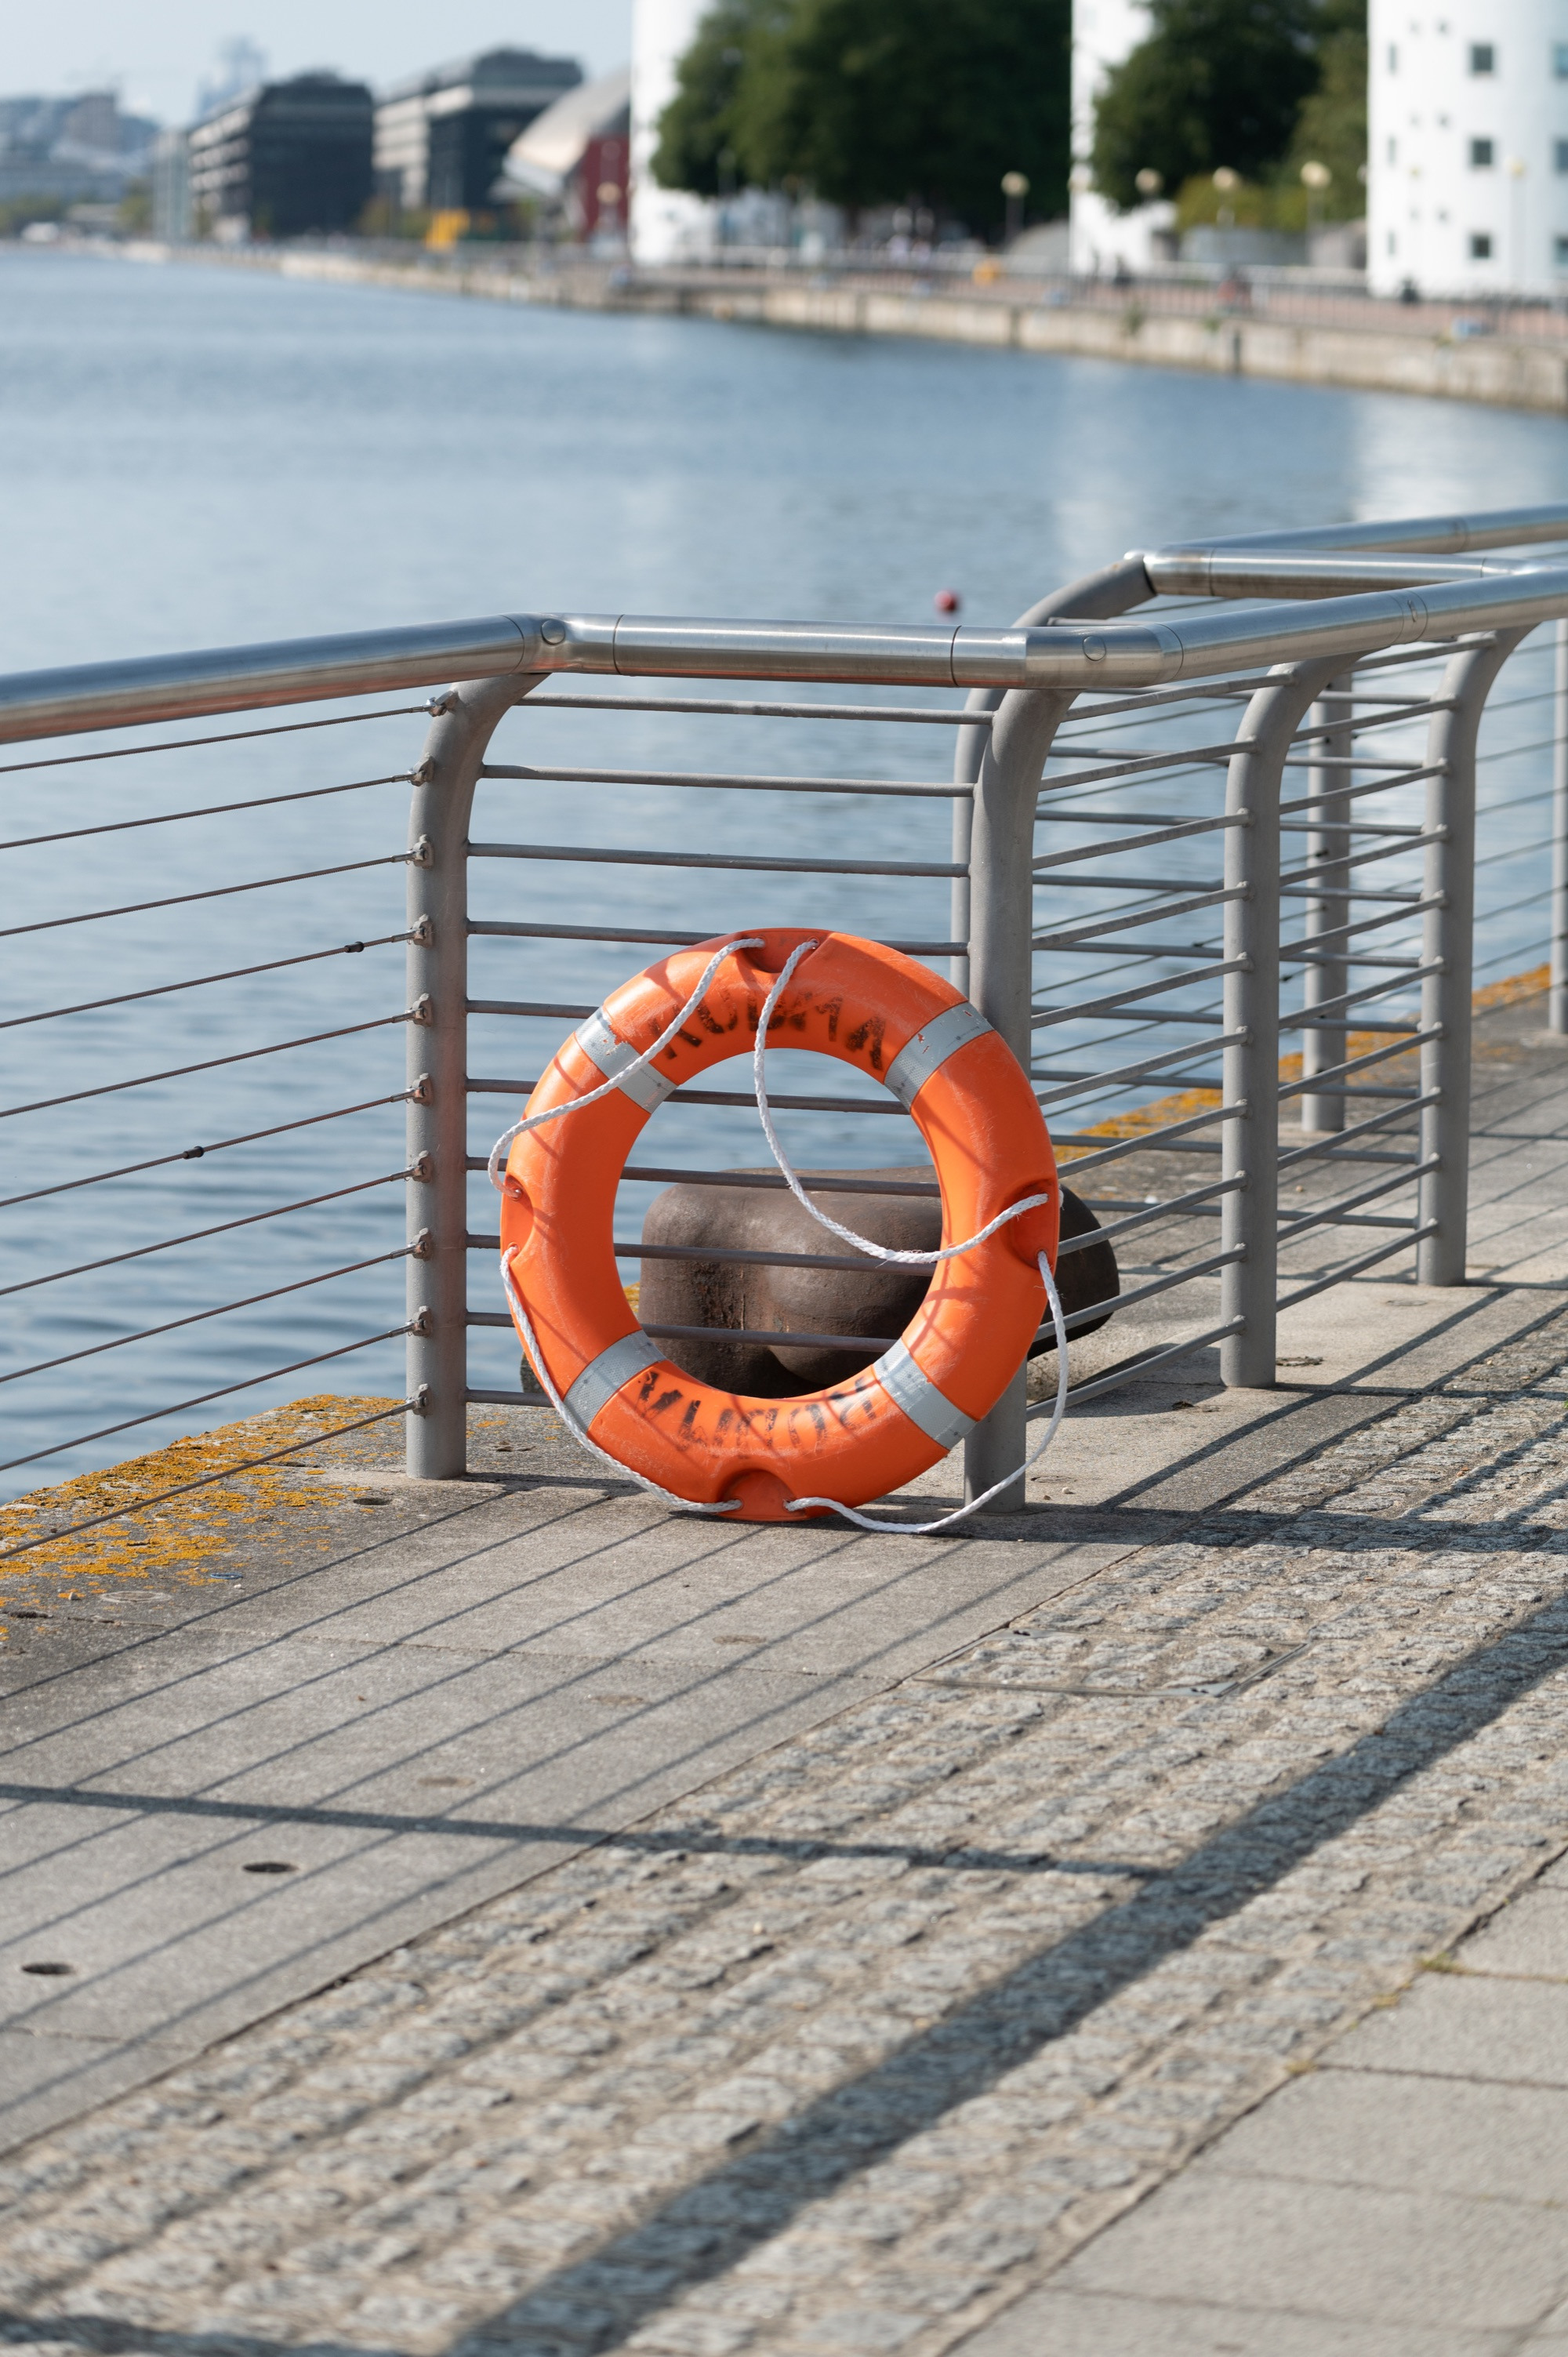 Royal Docks waterside with railing and life buoy